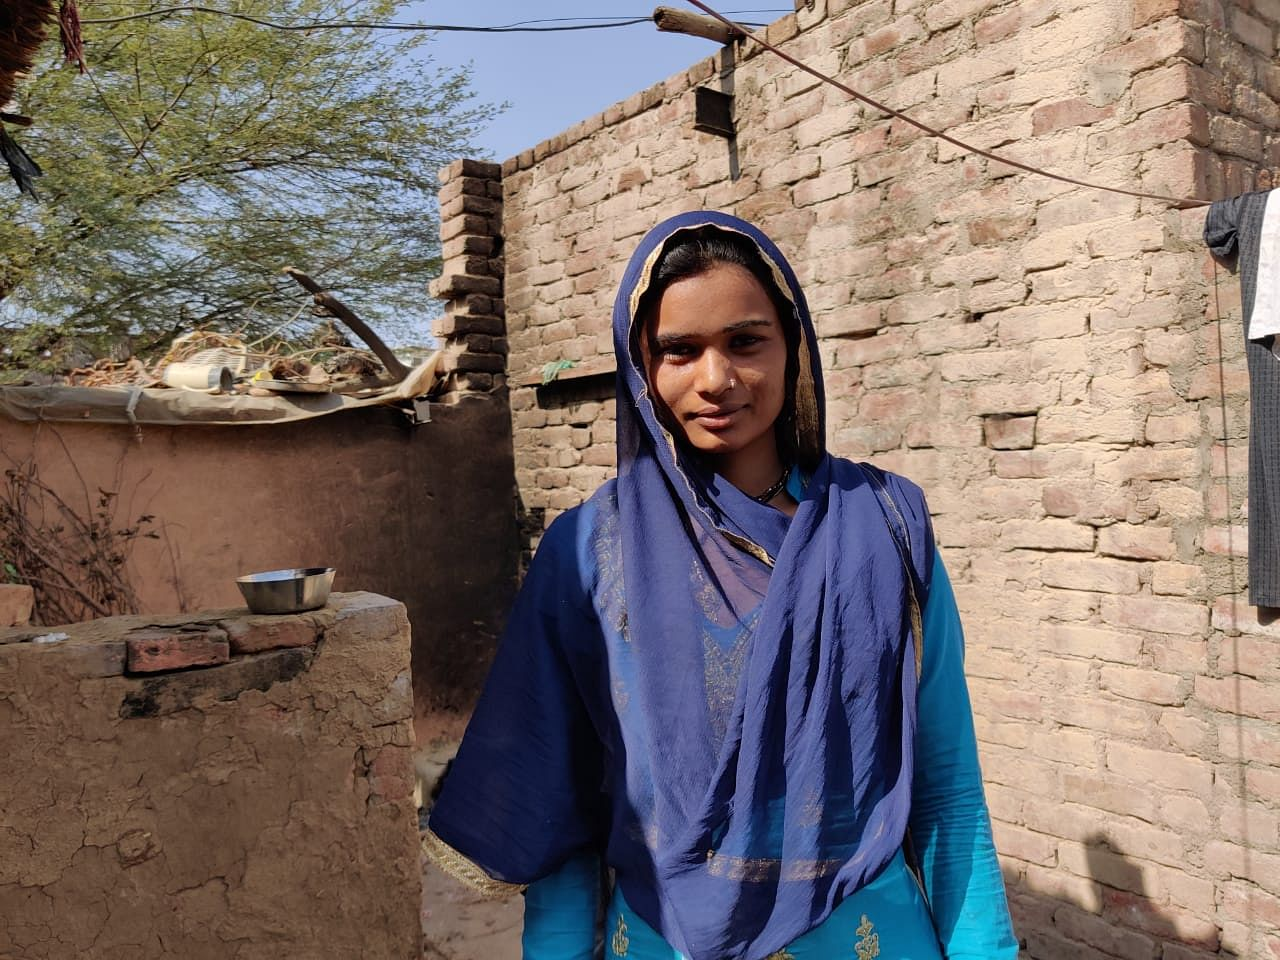 Jaswanti, who works at the MNREGA site, got tested recently and is now eager to get the Covid shot   Reeti Agarwal   ThePrint